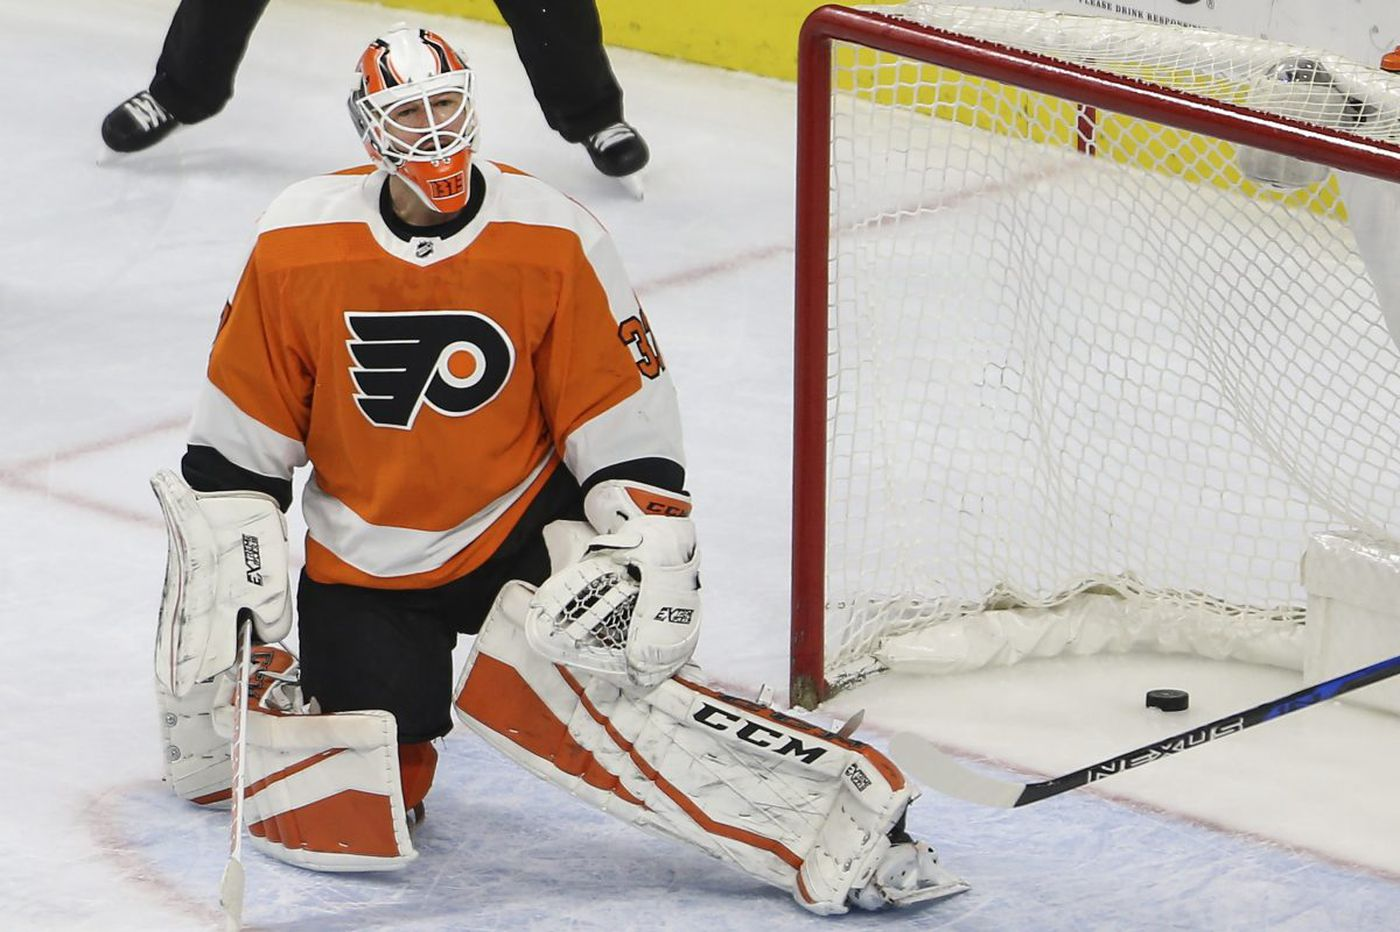 Quick hits on Flyers' 4-1 loss to Kings: How to end a (winning) streak